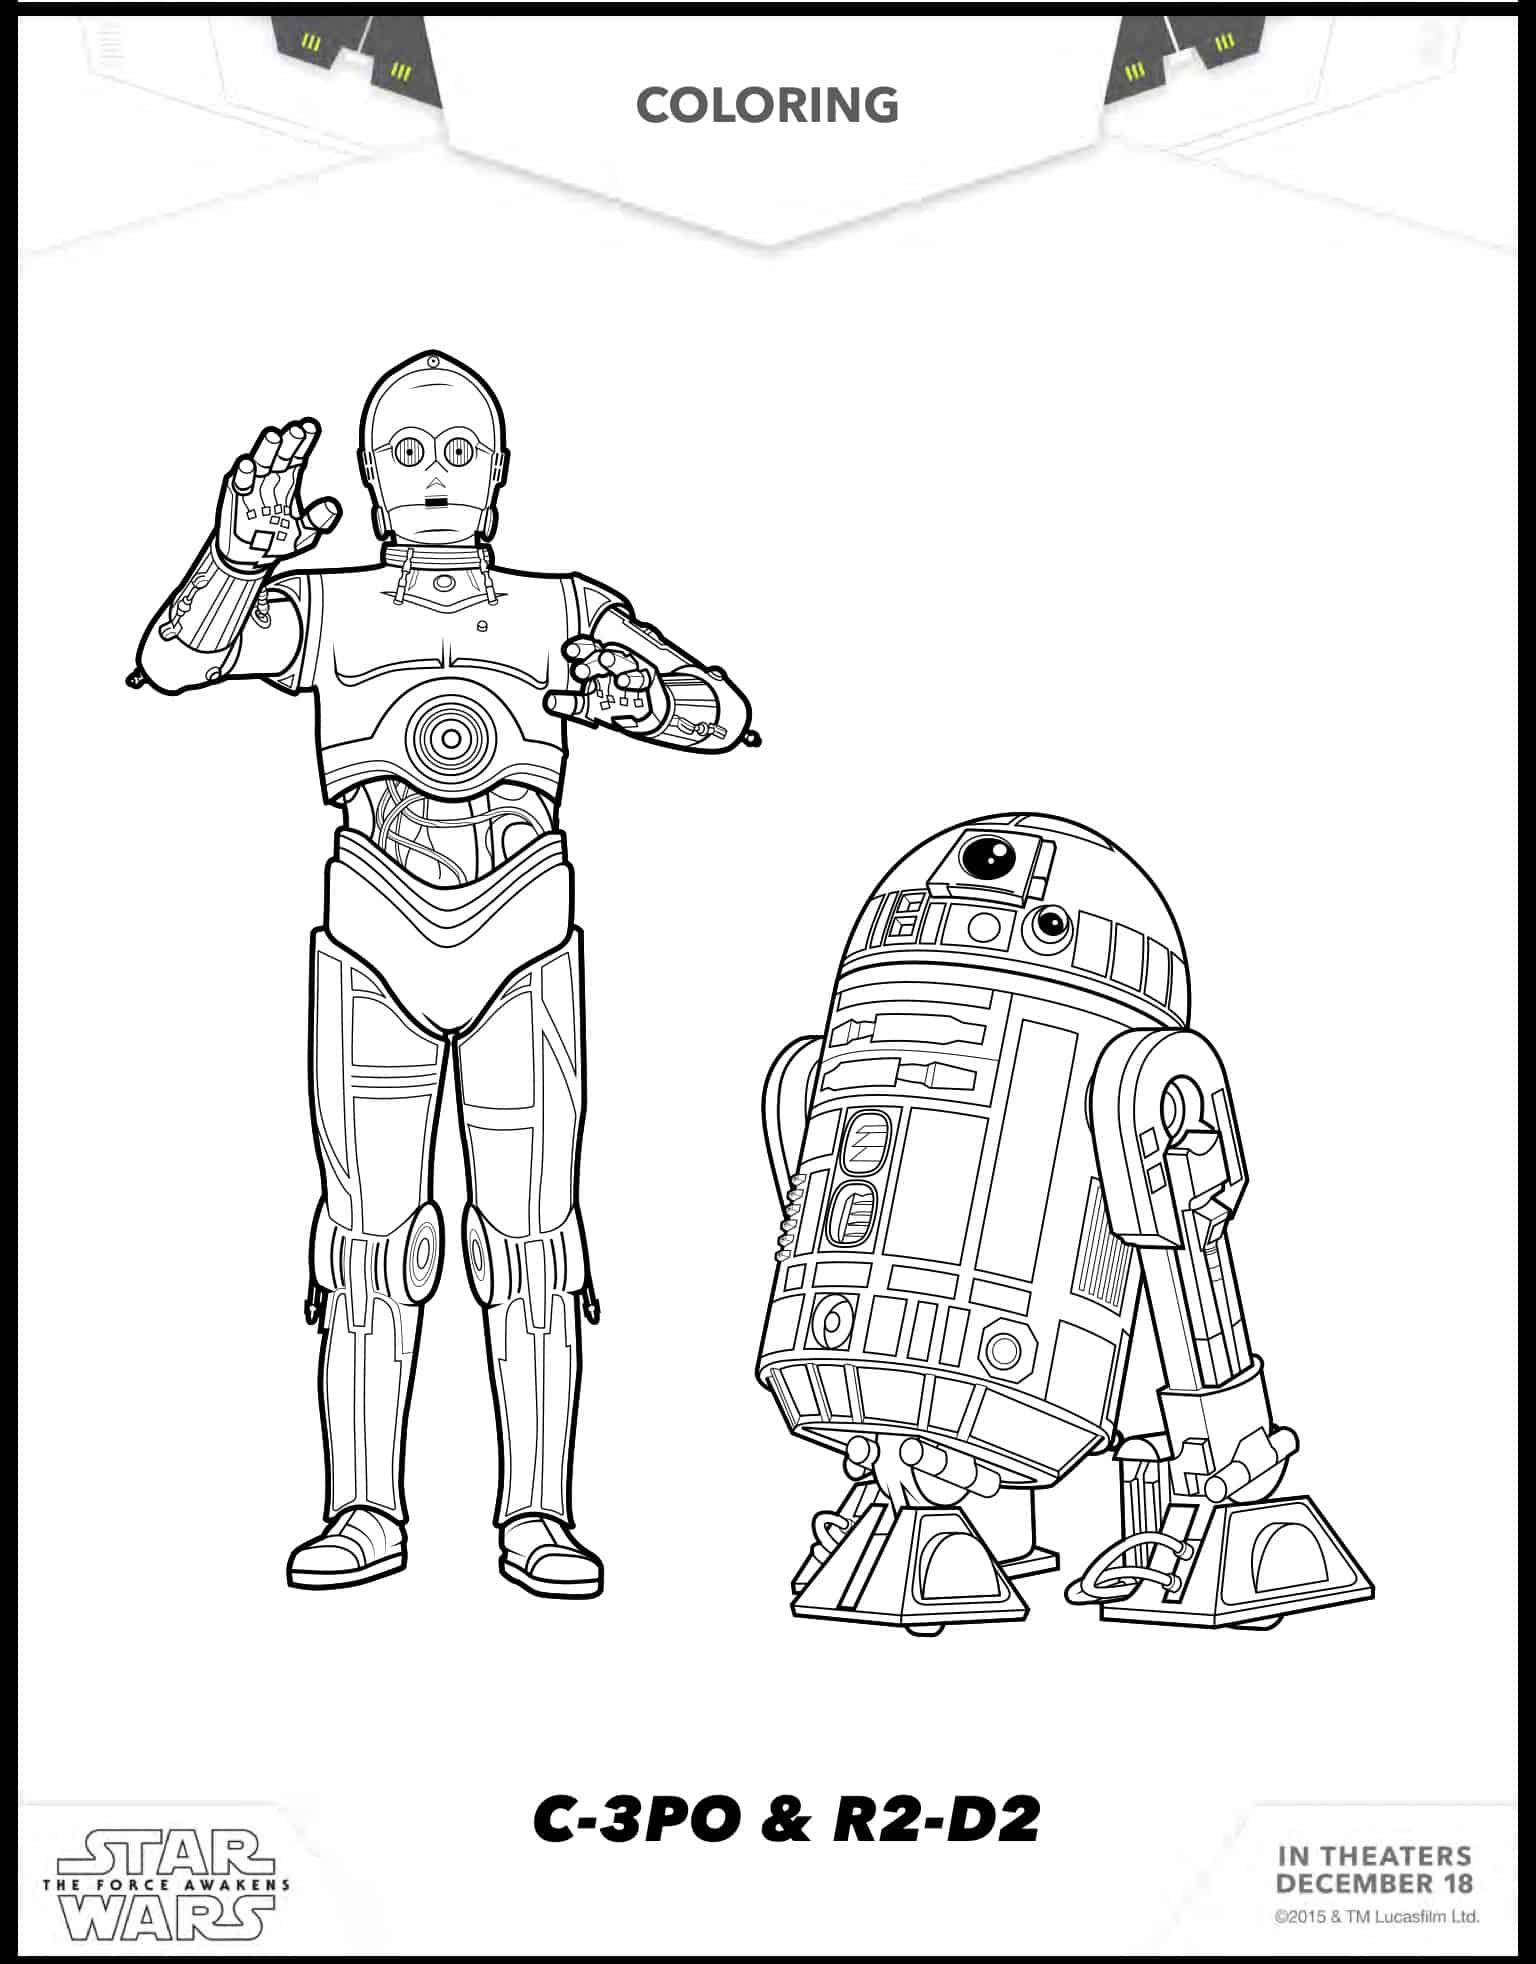 8 dibujos para colorear de Star Wars: The Force Awakens - Hispana Global